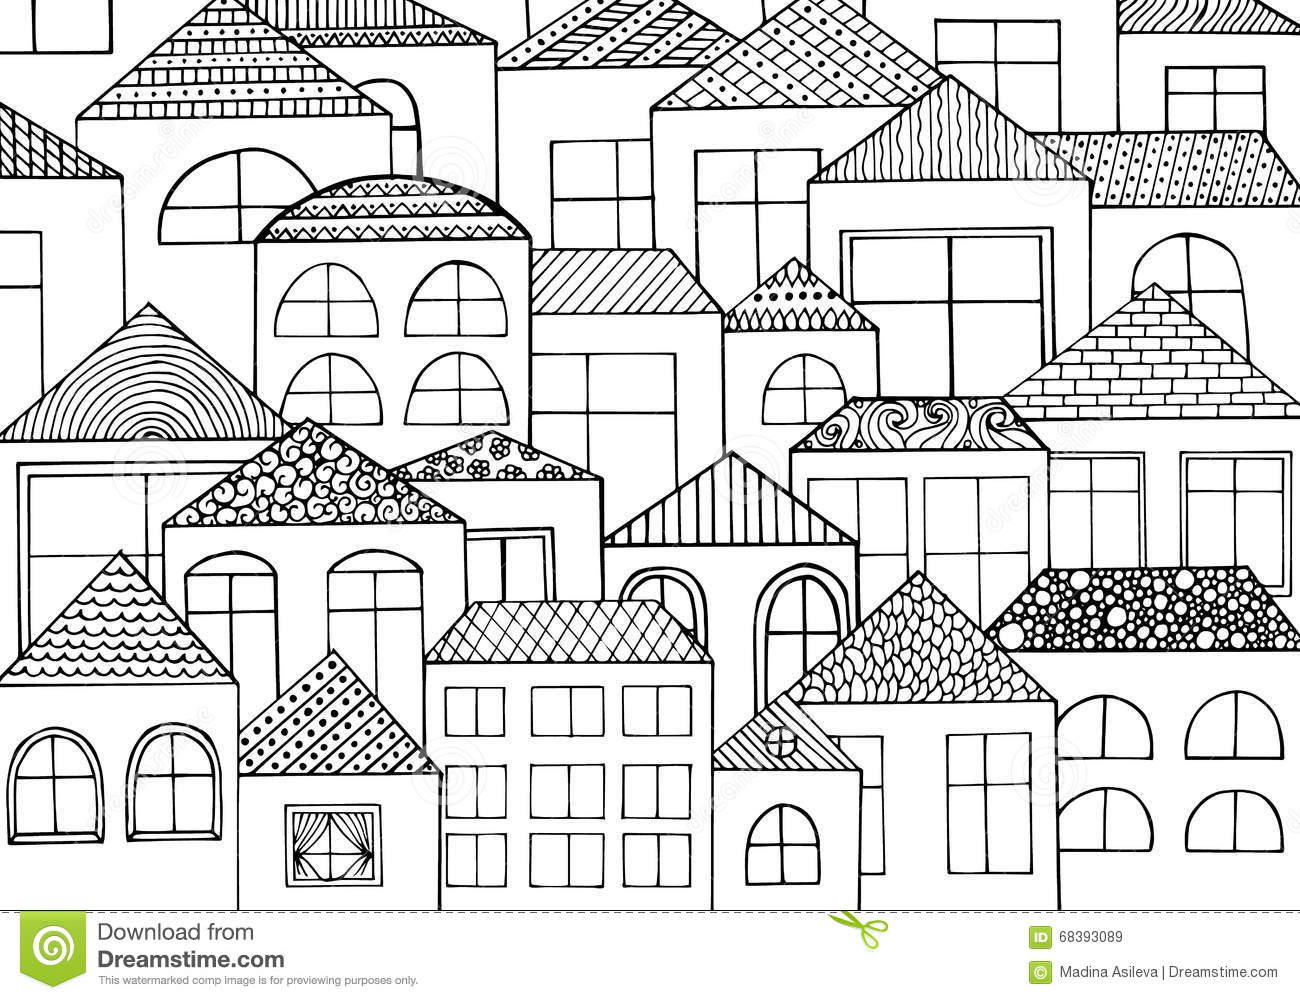 Coloring pages for adults and children book cartoon house in the